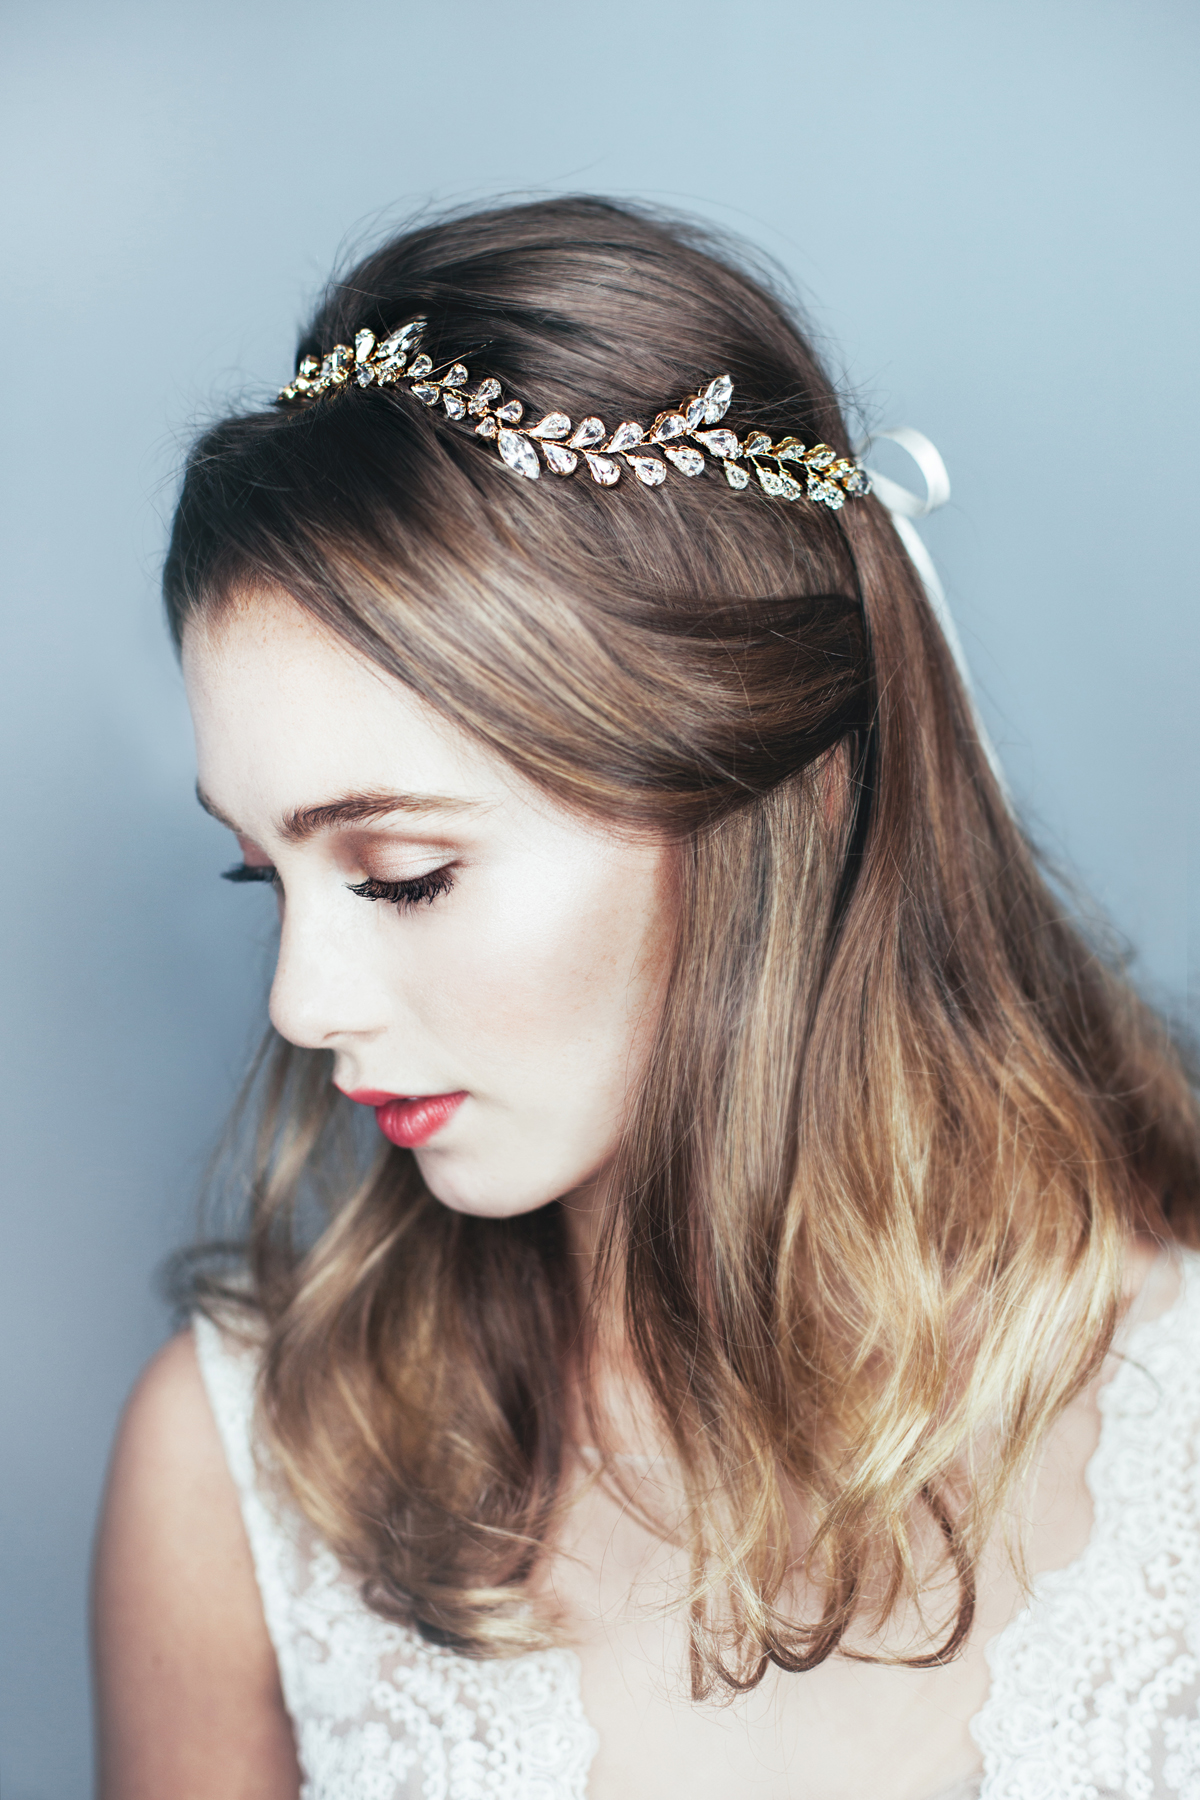 Rosie Willett Designs – 30% Saving on Exquisite Handmade Wedding Headpieces Jewellery